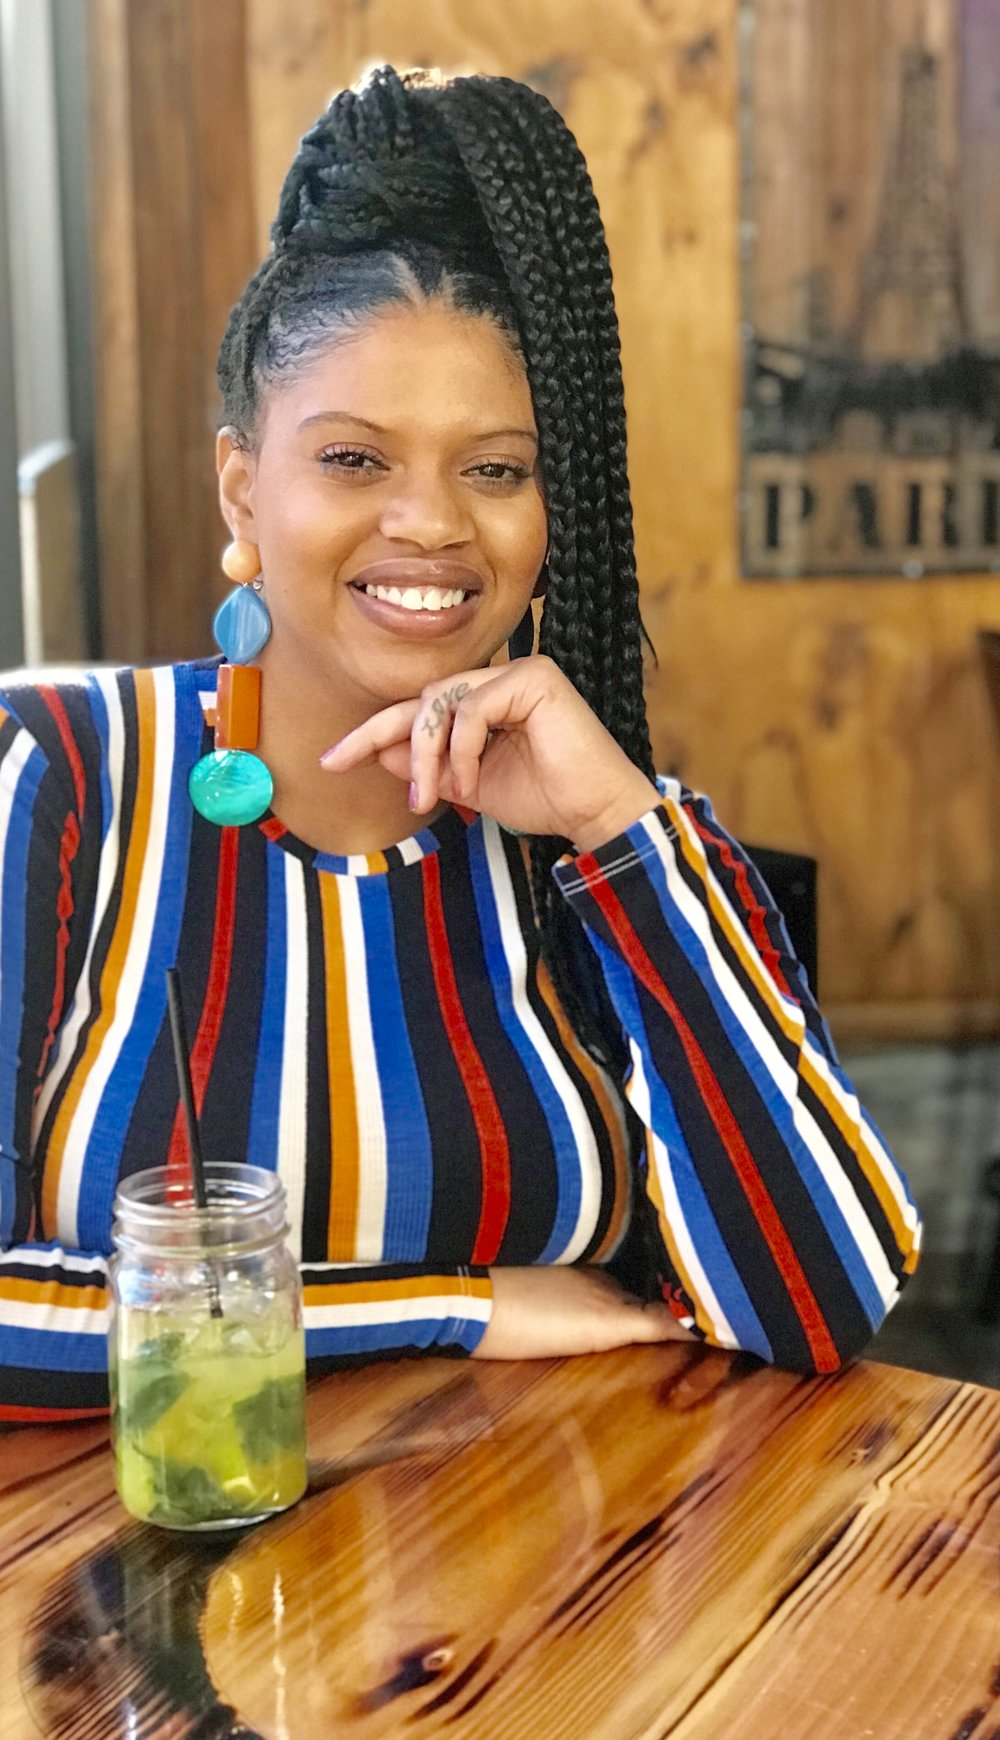 About writer:  Beya J. is an urban enthusiast. Through her travels, she ensures to engage in local culture, customs + food while exploring concepts that build community and highlight themes around urban living. She is Dominican-born, raised in Lawrence, MA. IG/TWITTER:  plump_lips